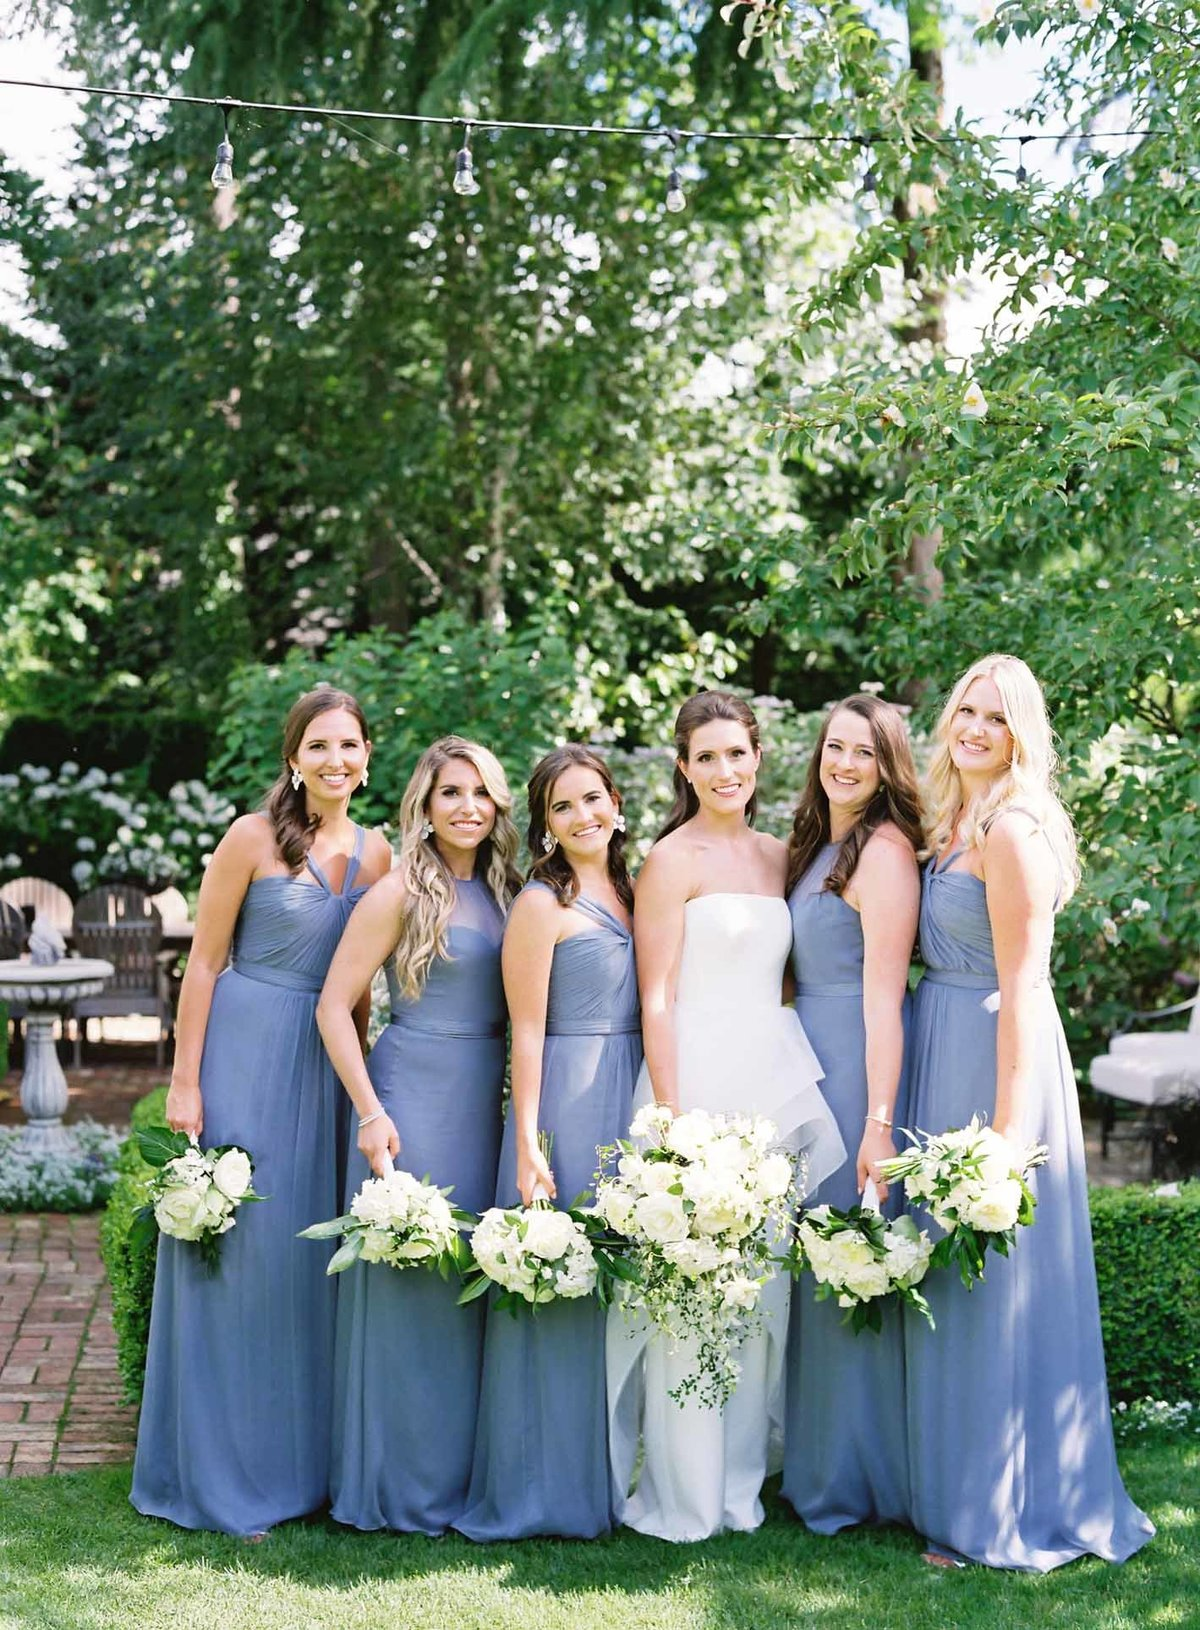 Kerry's bridesmaids all dressed in French blue gowns and holding white bouquets.